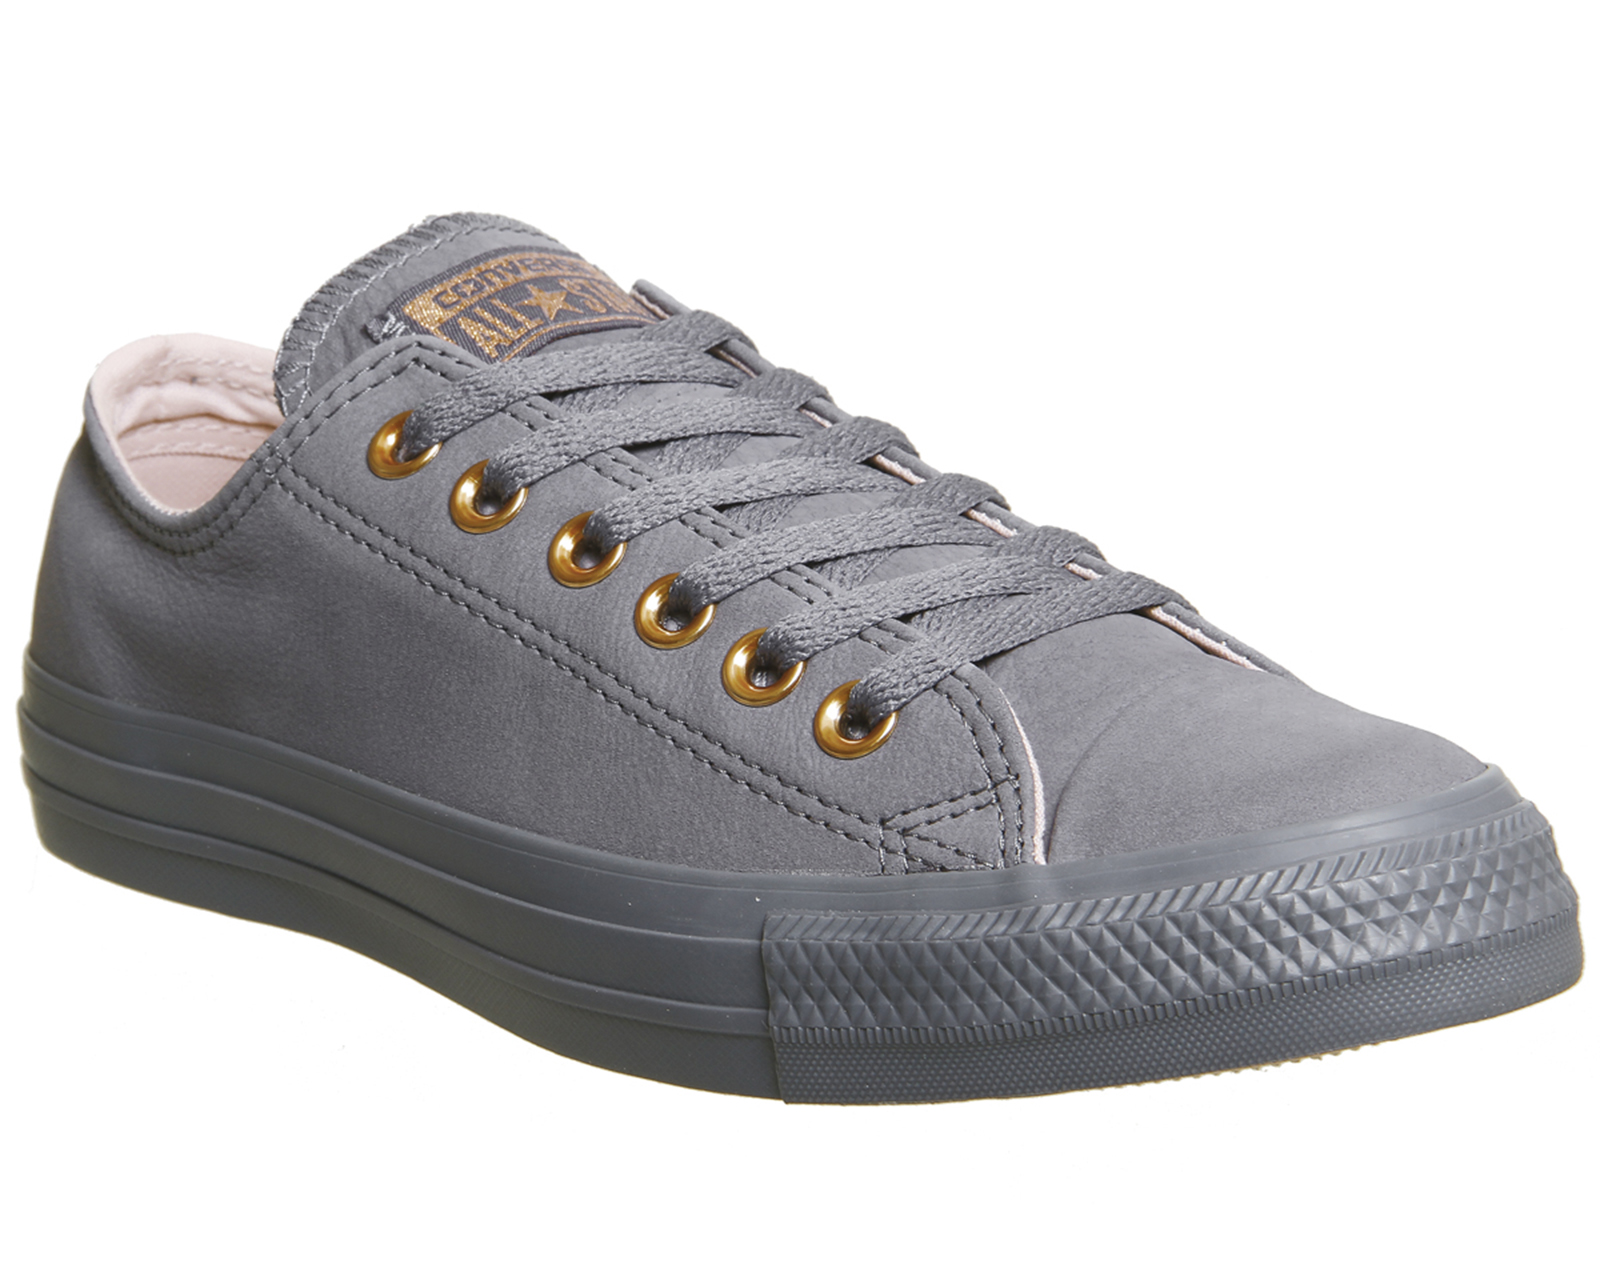 72ccf443360c Sentinel Womens Converse All Star Low Leather Light Carbon Potpourri  Trainers Shoes